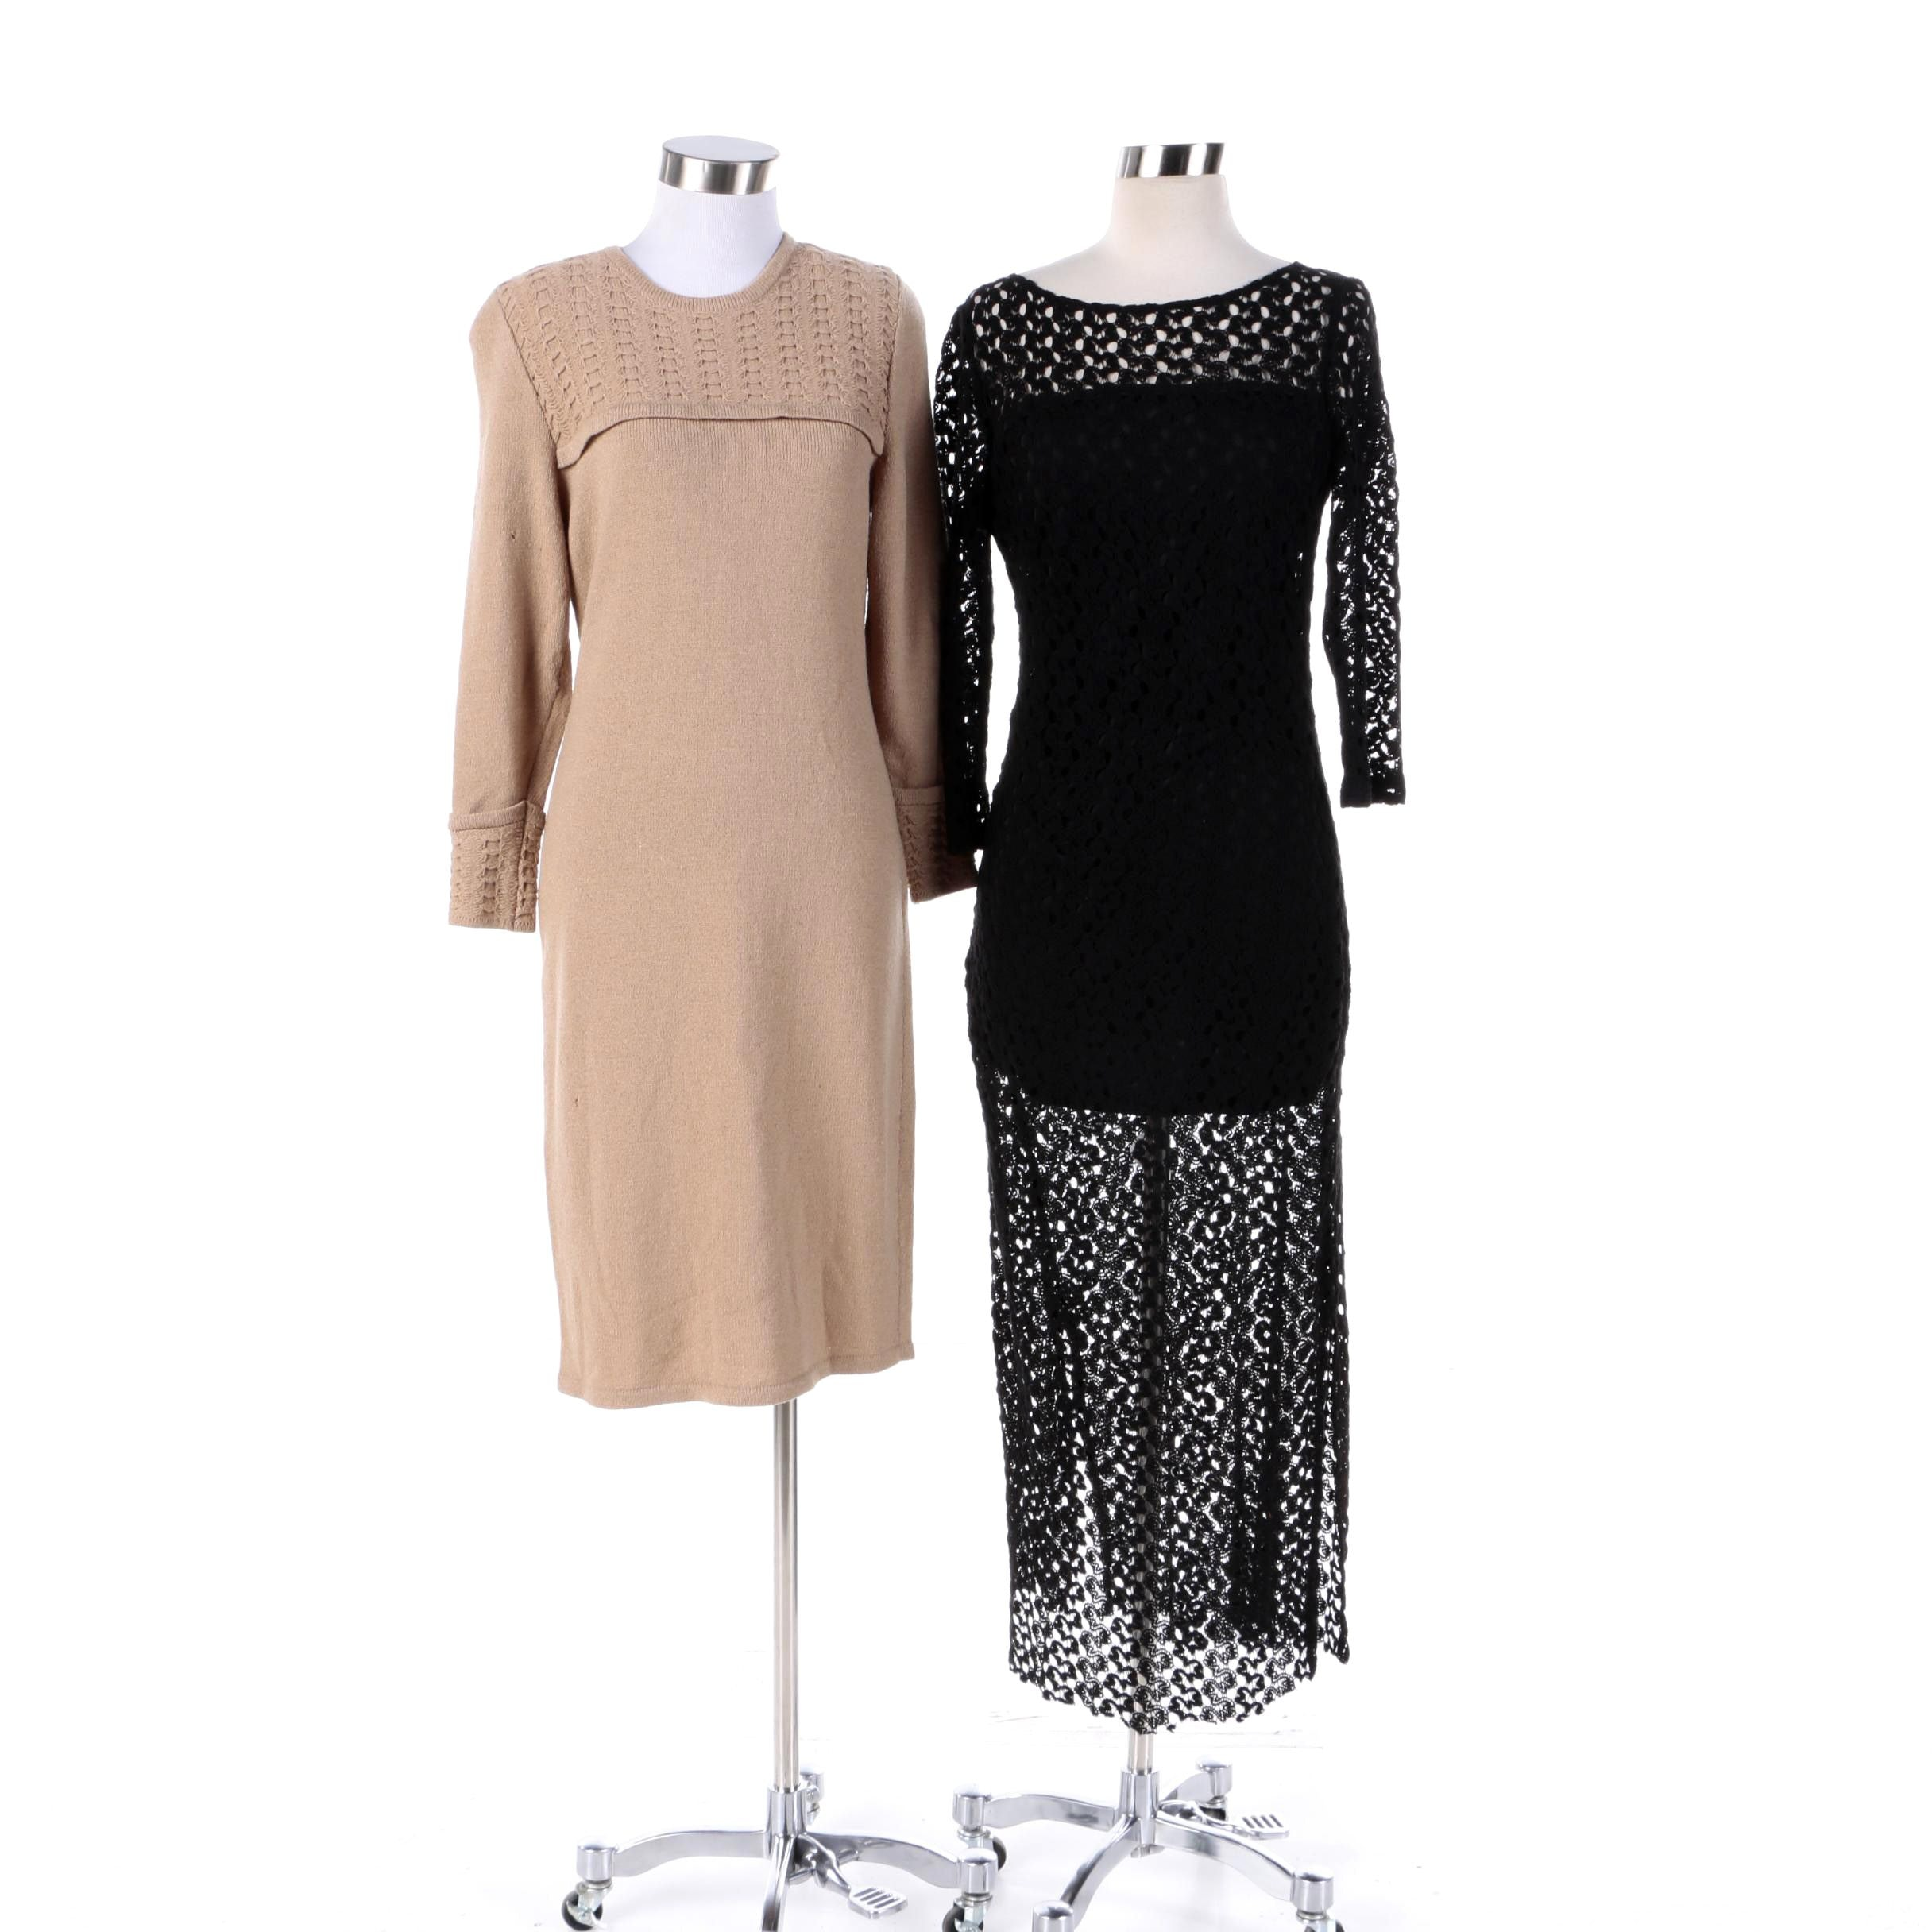 Women's Knit Dresses Including Carolina Herrera Knitwear